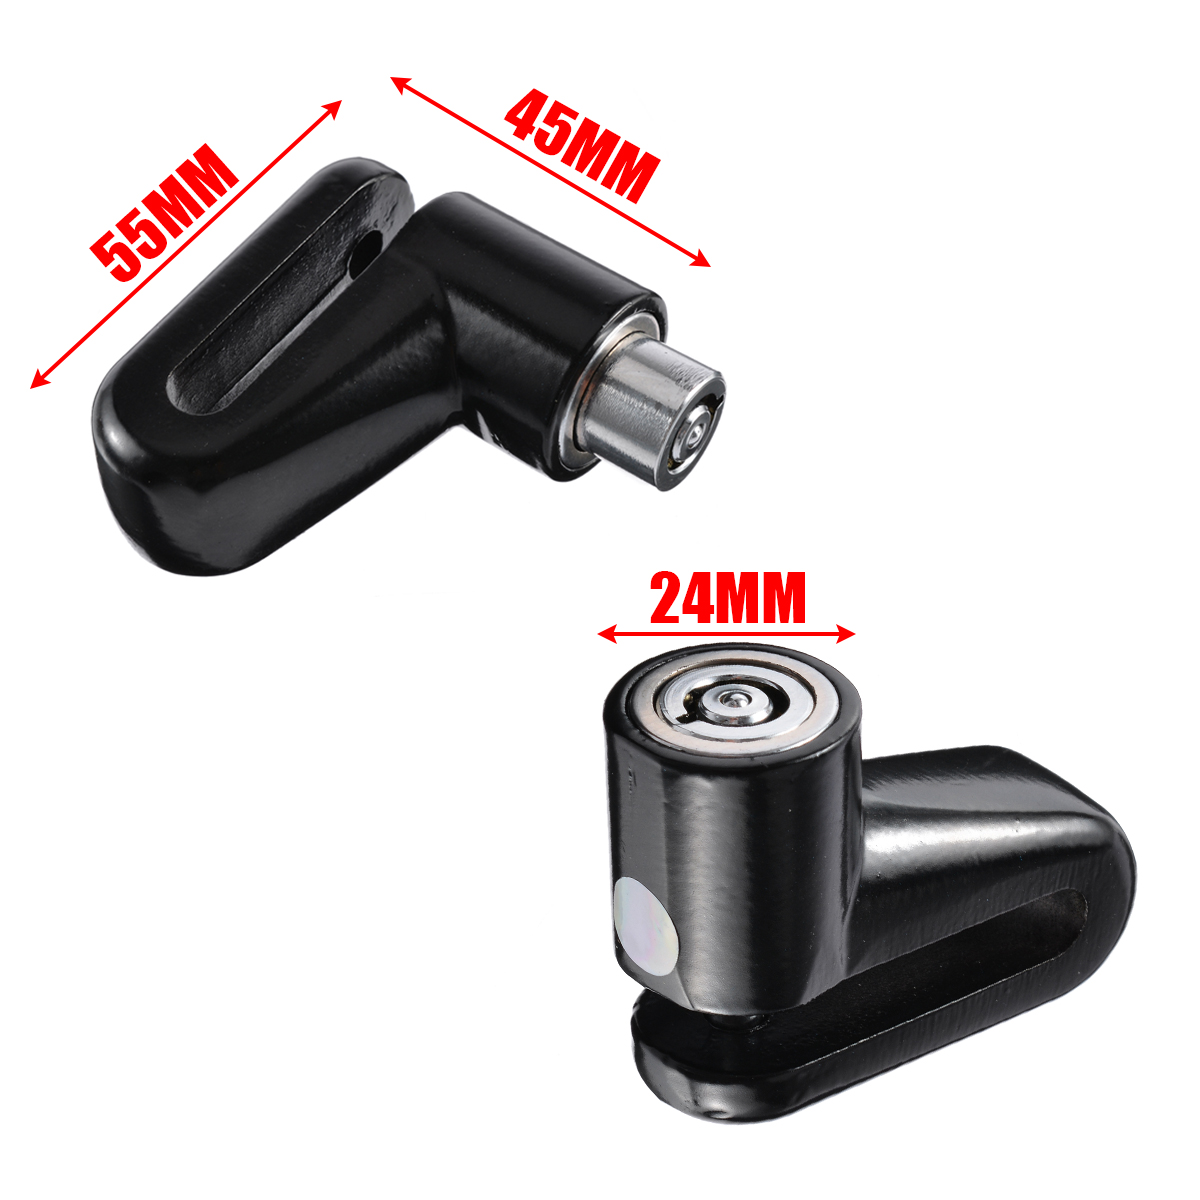 Image 5 - 1PC Heavy Duty Motorbike Disk Brake Rotor Lock Security Anti theft Solid Locks For Moped Scooter Electromobile Bicycle-in Theft Protection from Automobiles & Motorcycles